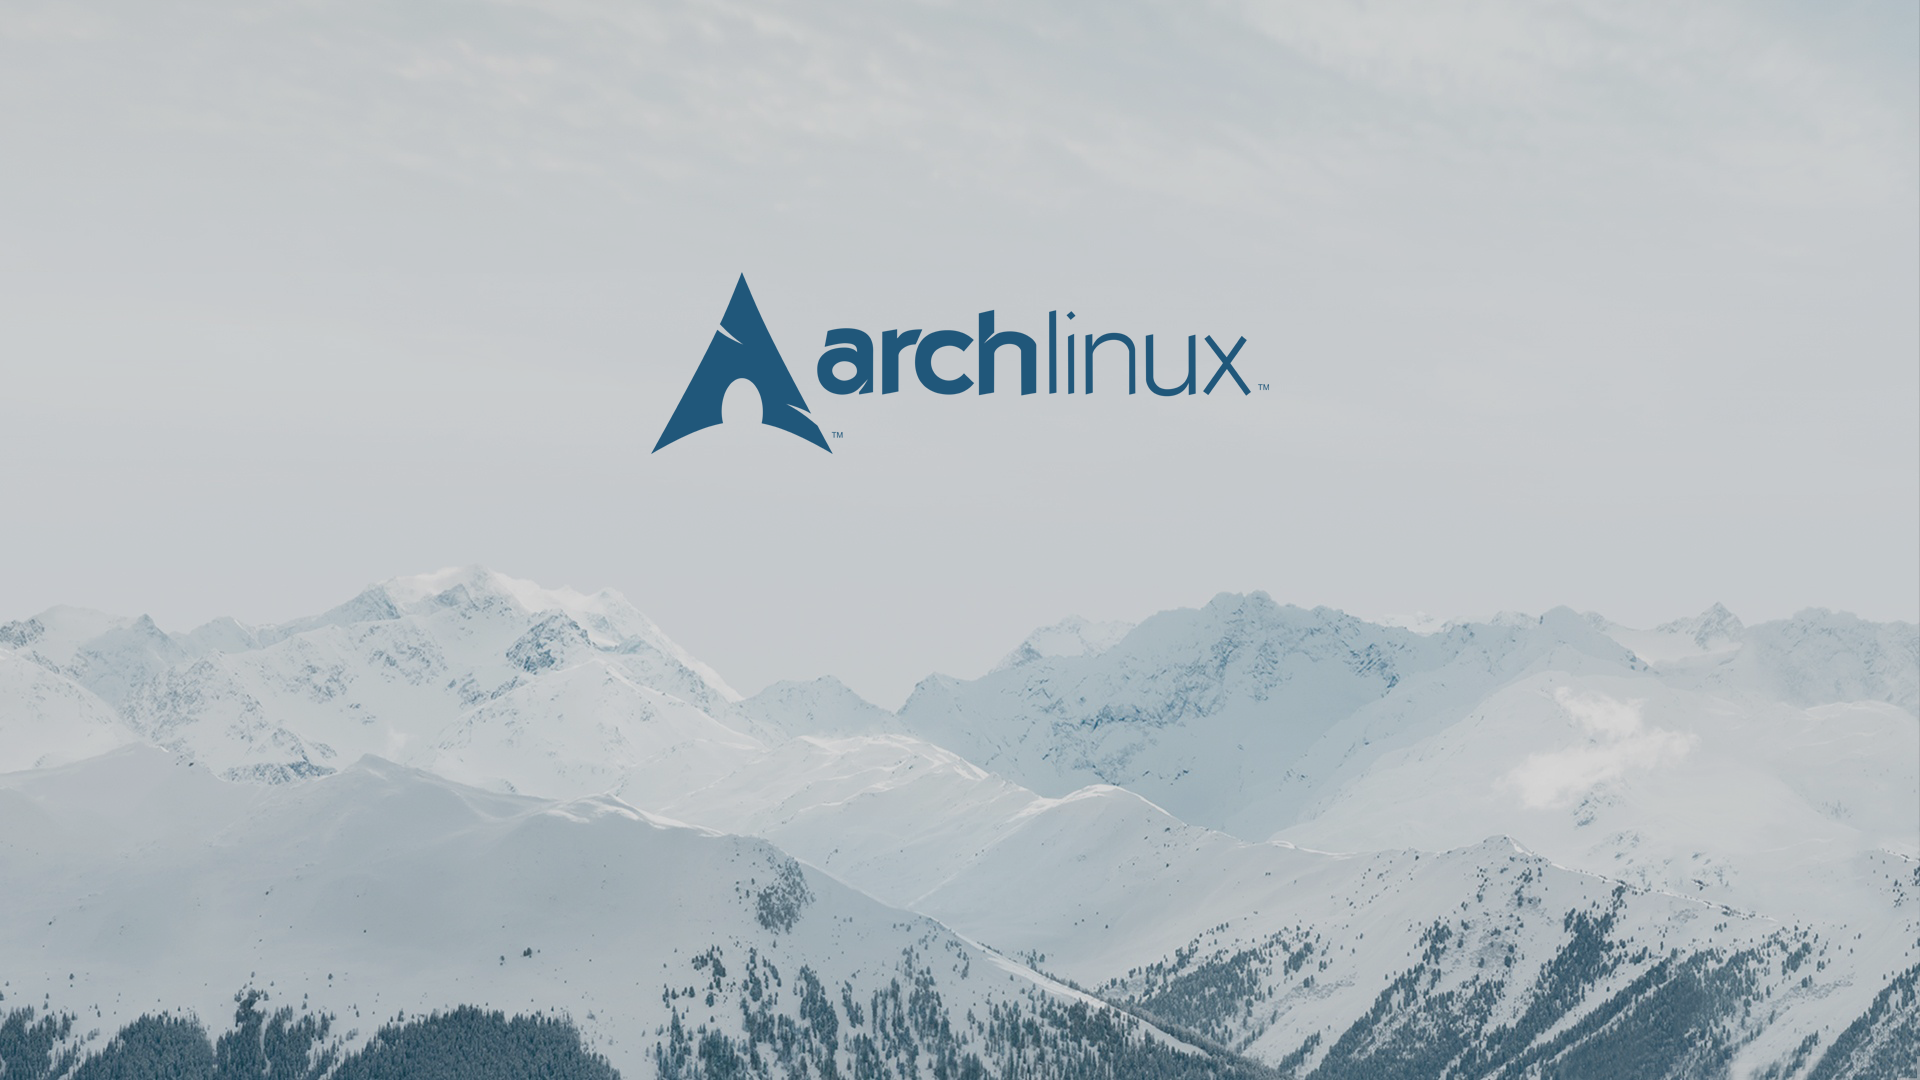 wallpaper arch linux by bruoneightwo on deviantart